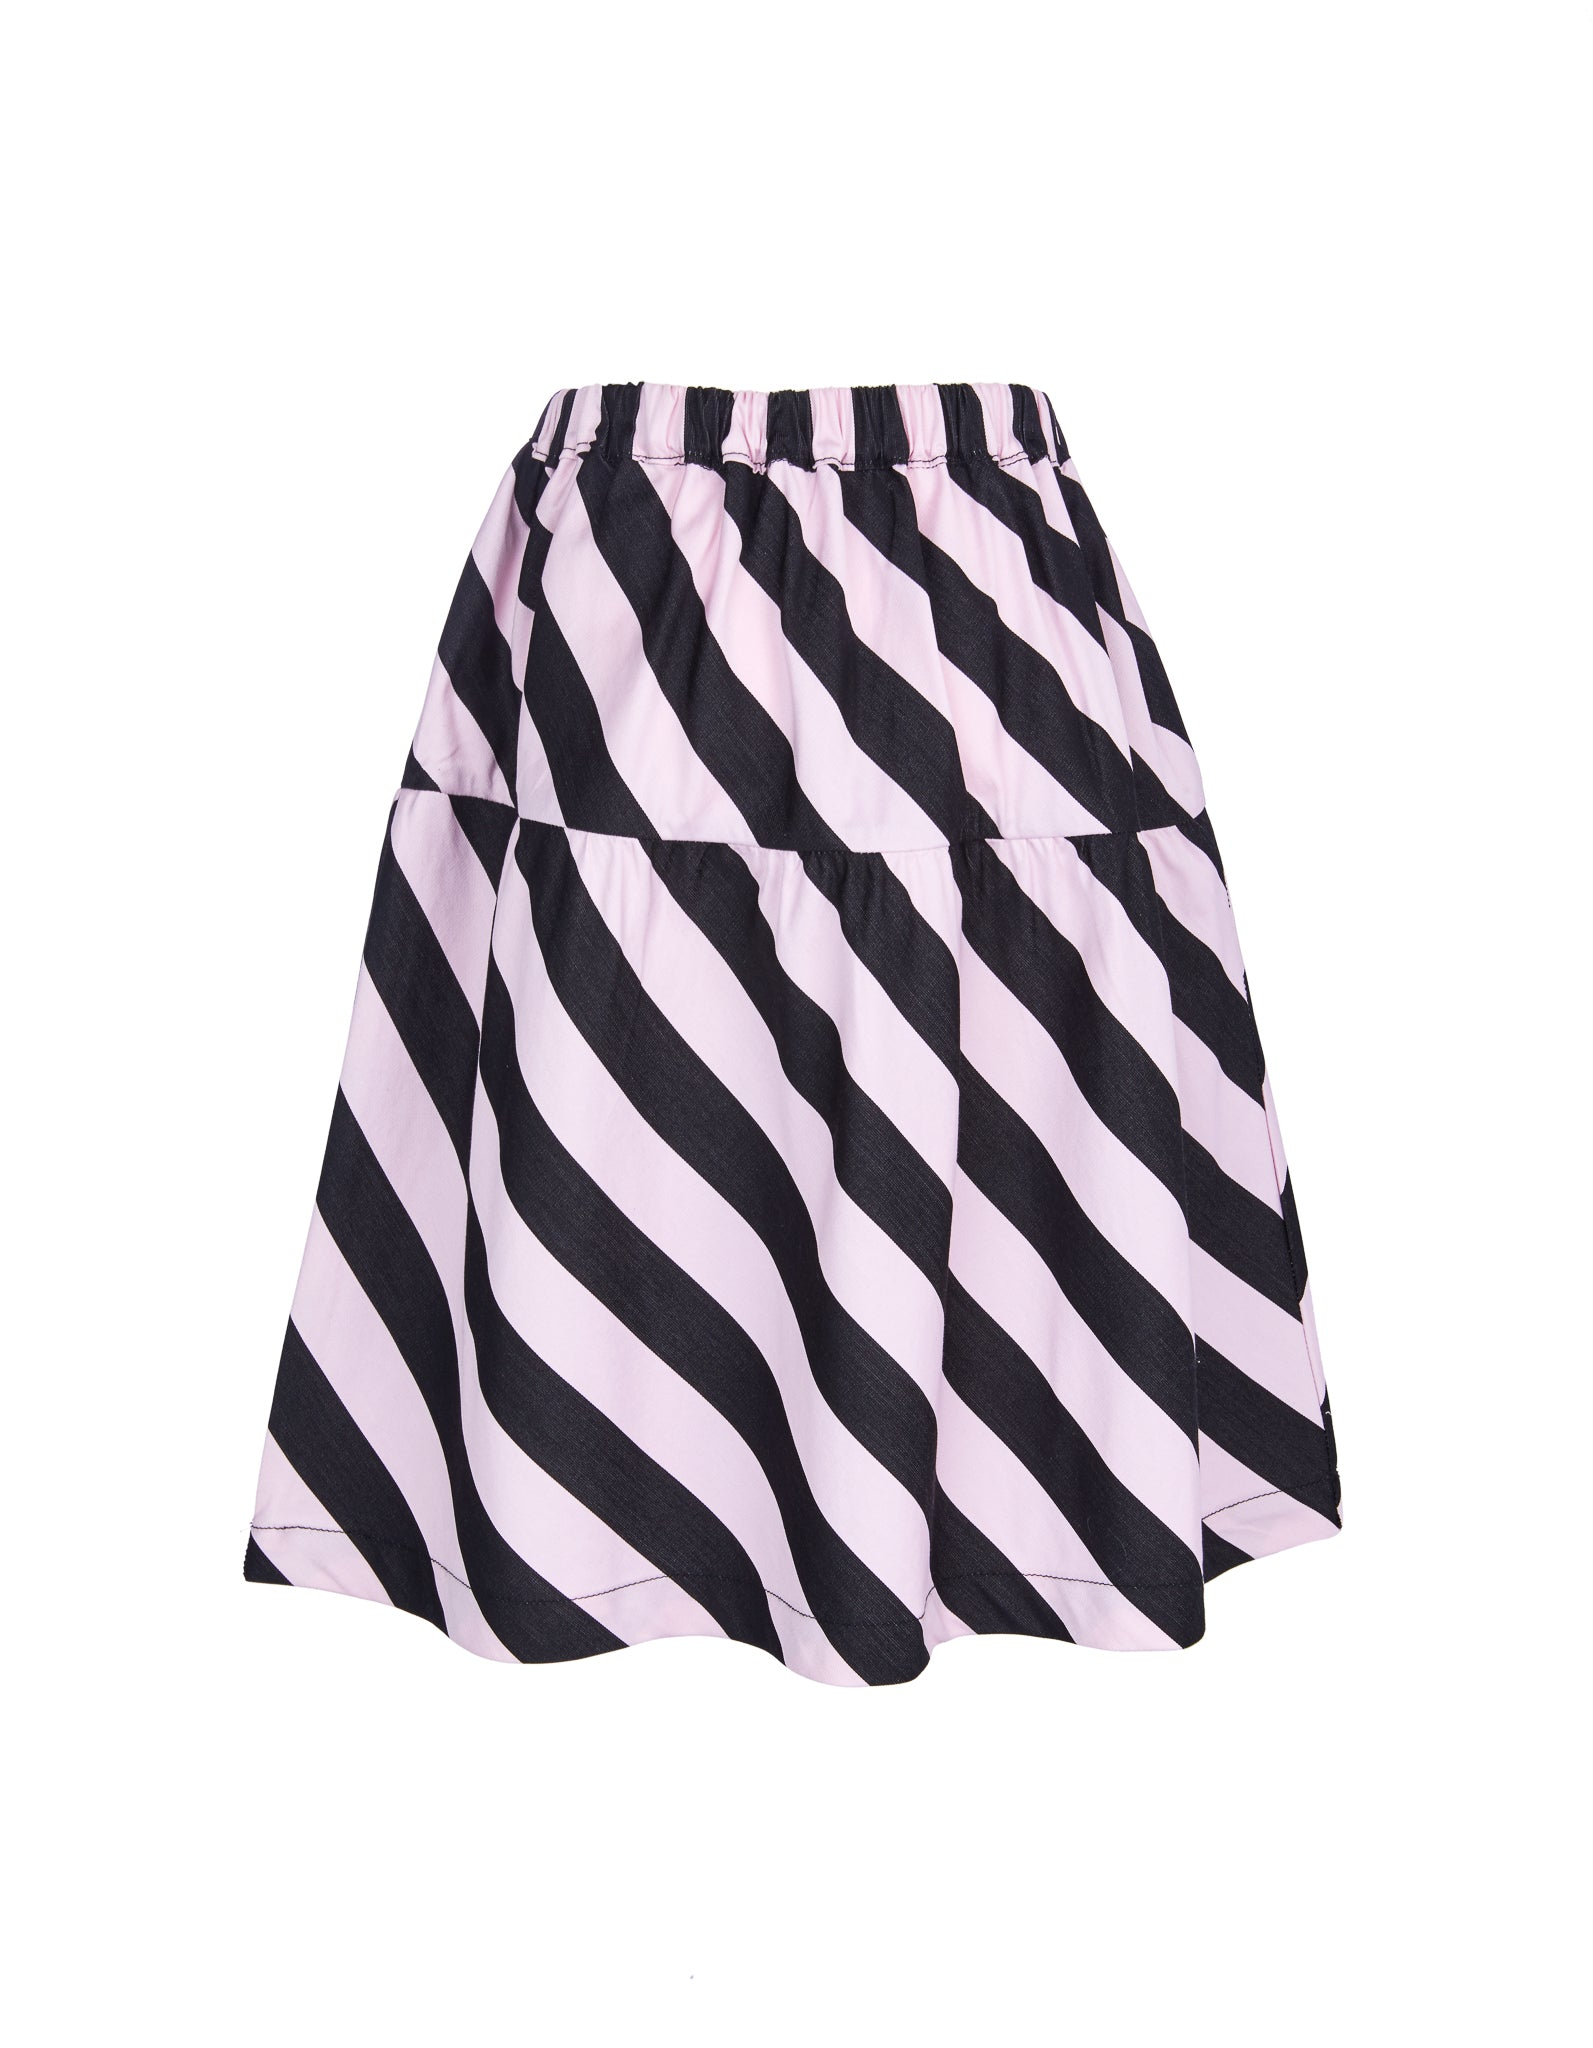 WAISTBAND SKIRT IN PINK AND BLACK